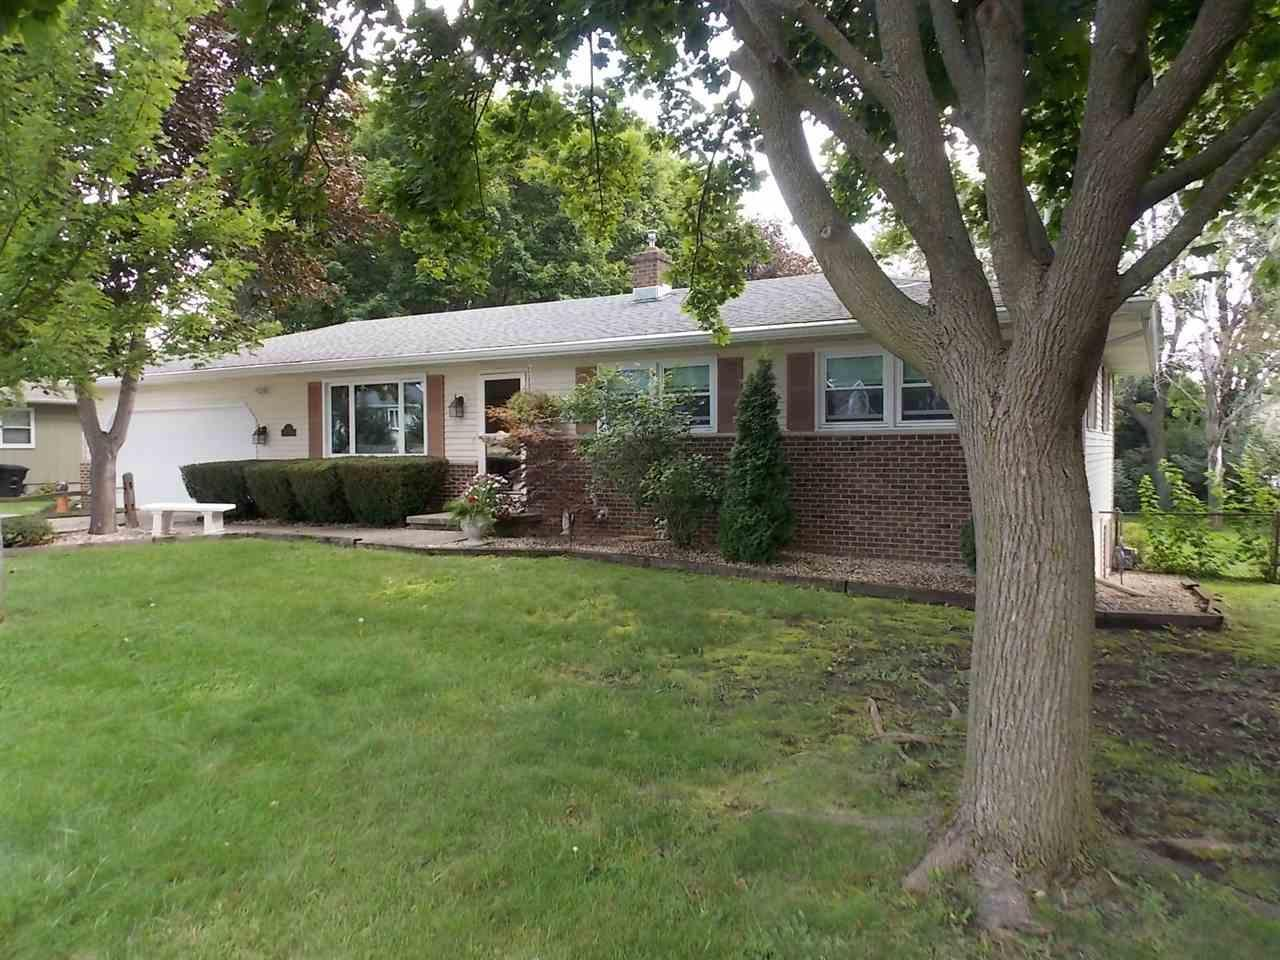 local real estate homes for sale u2014 stoughton wi u2014 coldwell banker